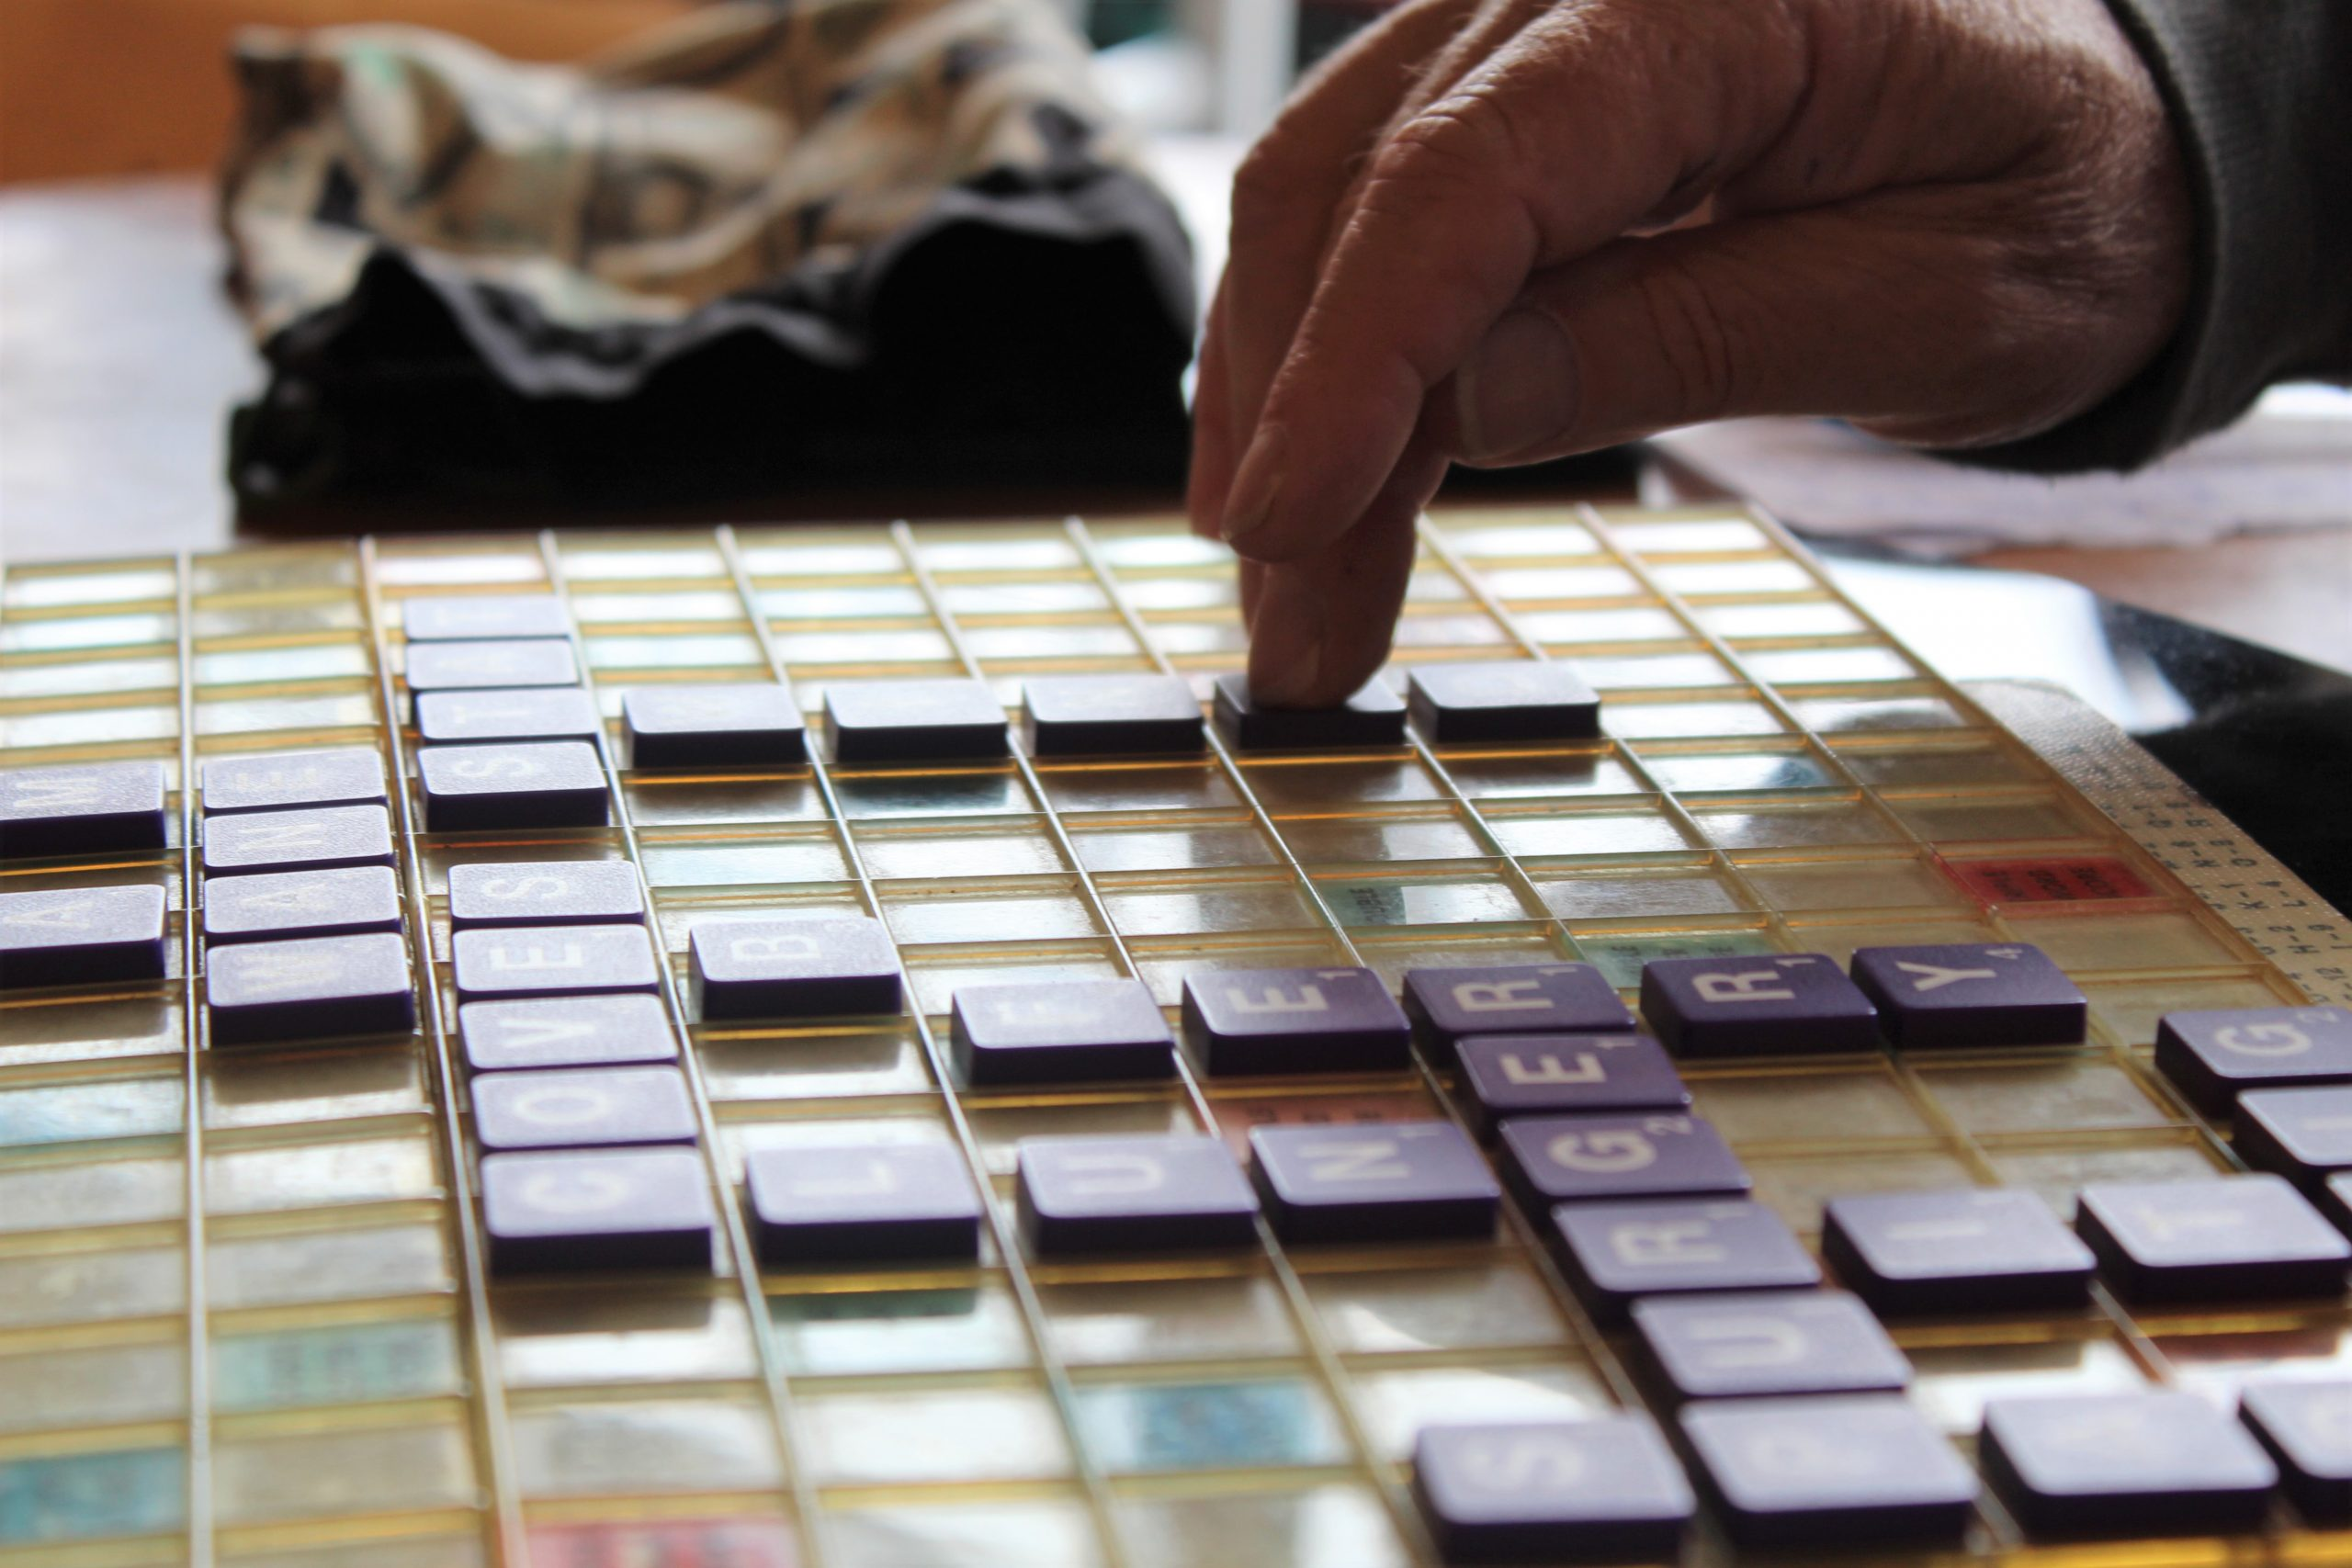 Never have I ever played Scrabble: Vero's Sunday September 16th